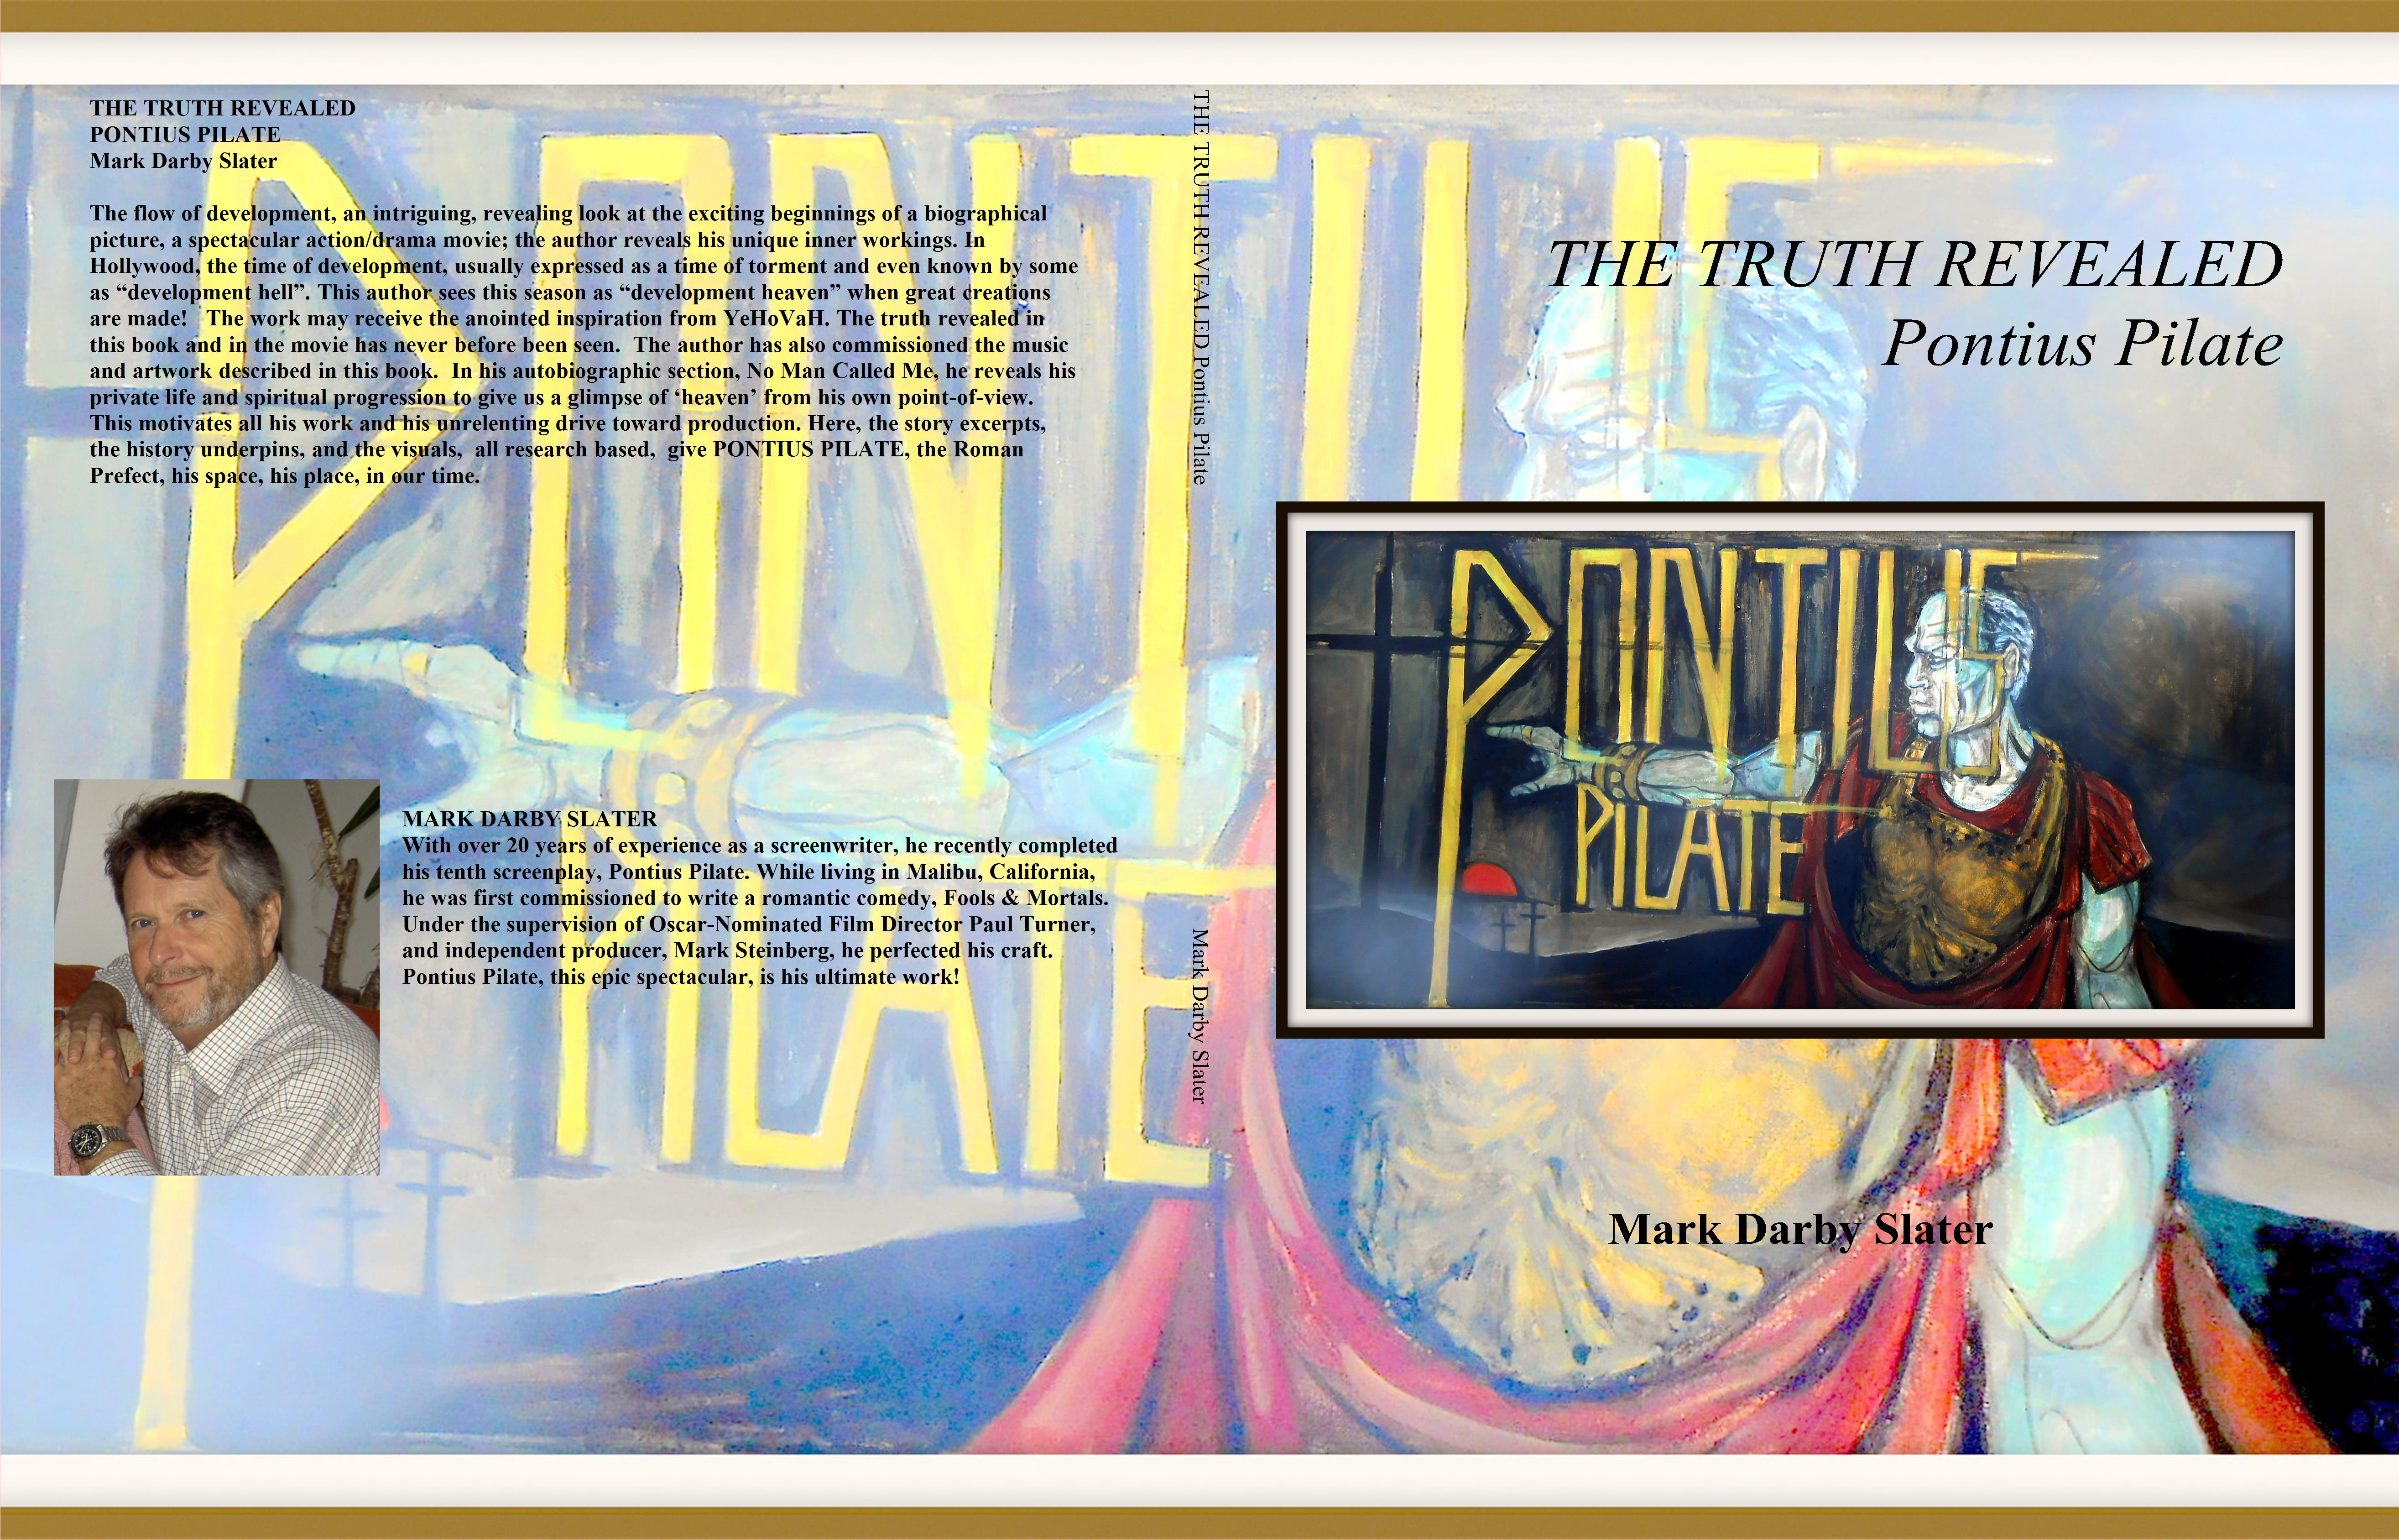 THE TRUTH REVEALED Pontius Pilate cover image